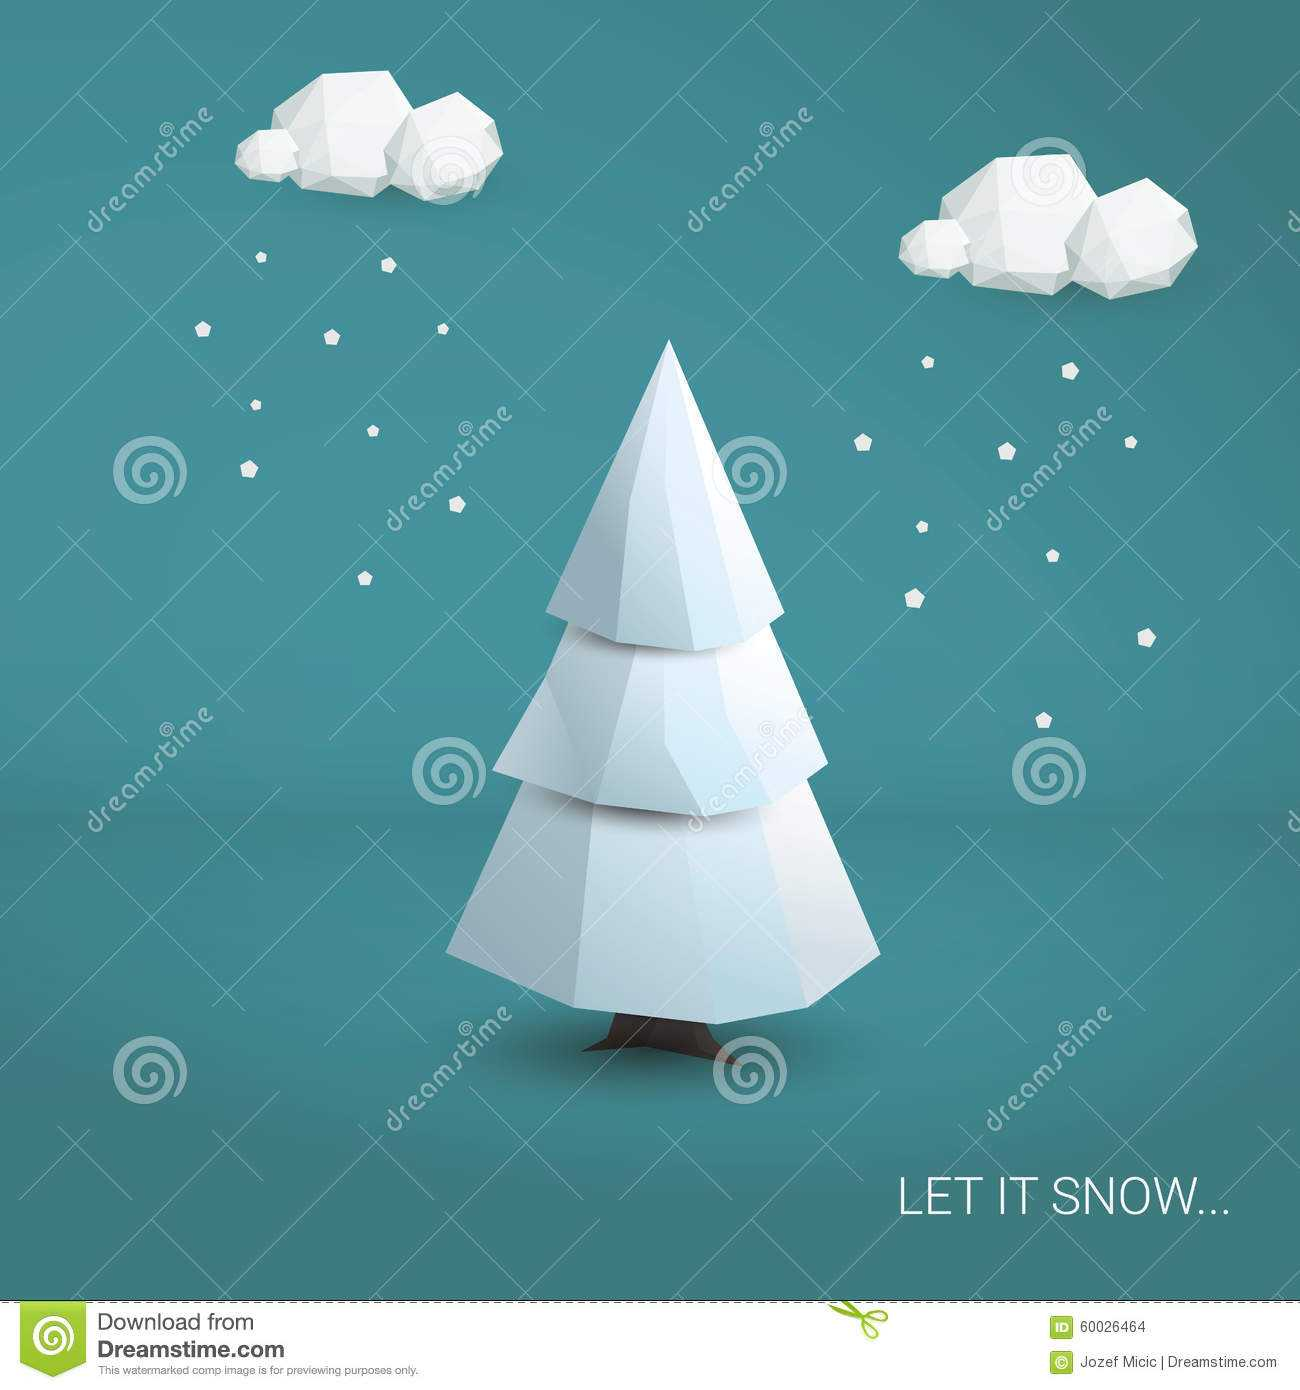 3D Low Poly Christmas Tree Card Template Stock Illustration Within 3D Christmas Tree Card Template